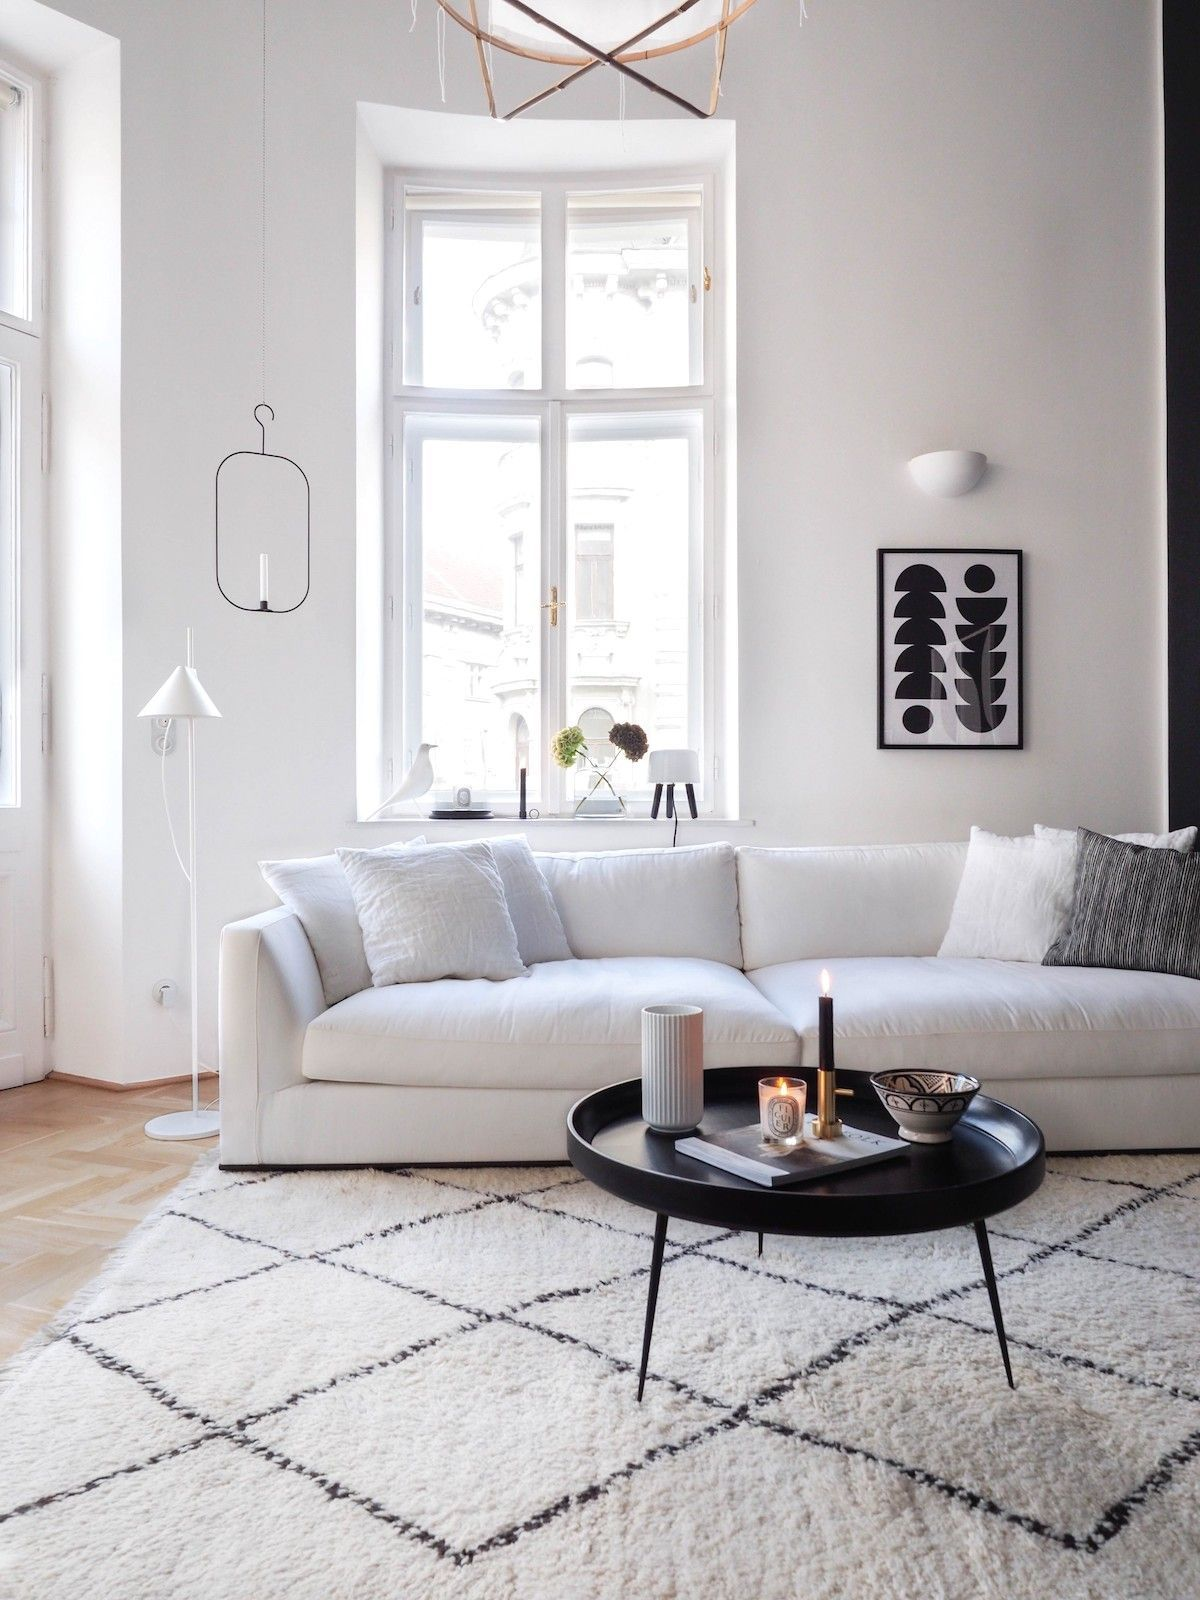 12 Scandinavian Rugs For The Perfect Nordic Look Minimalist Living Room Living Room Scandinavian Minimalist Living Room Decor